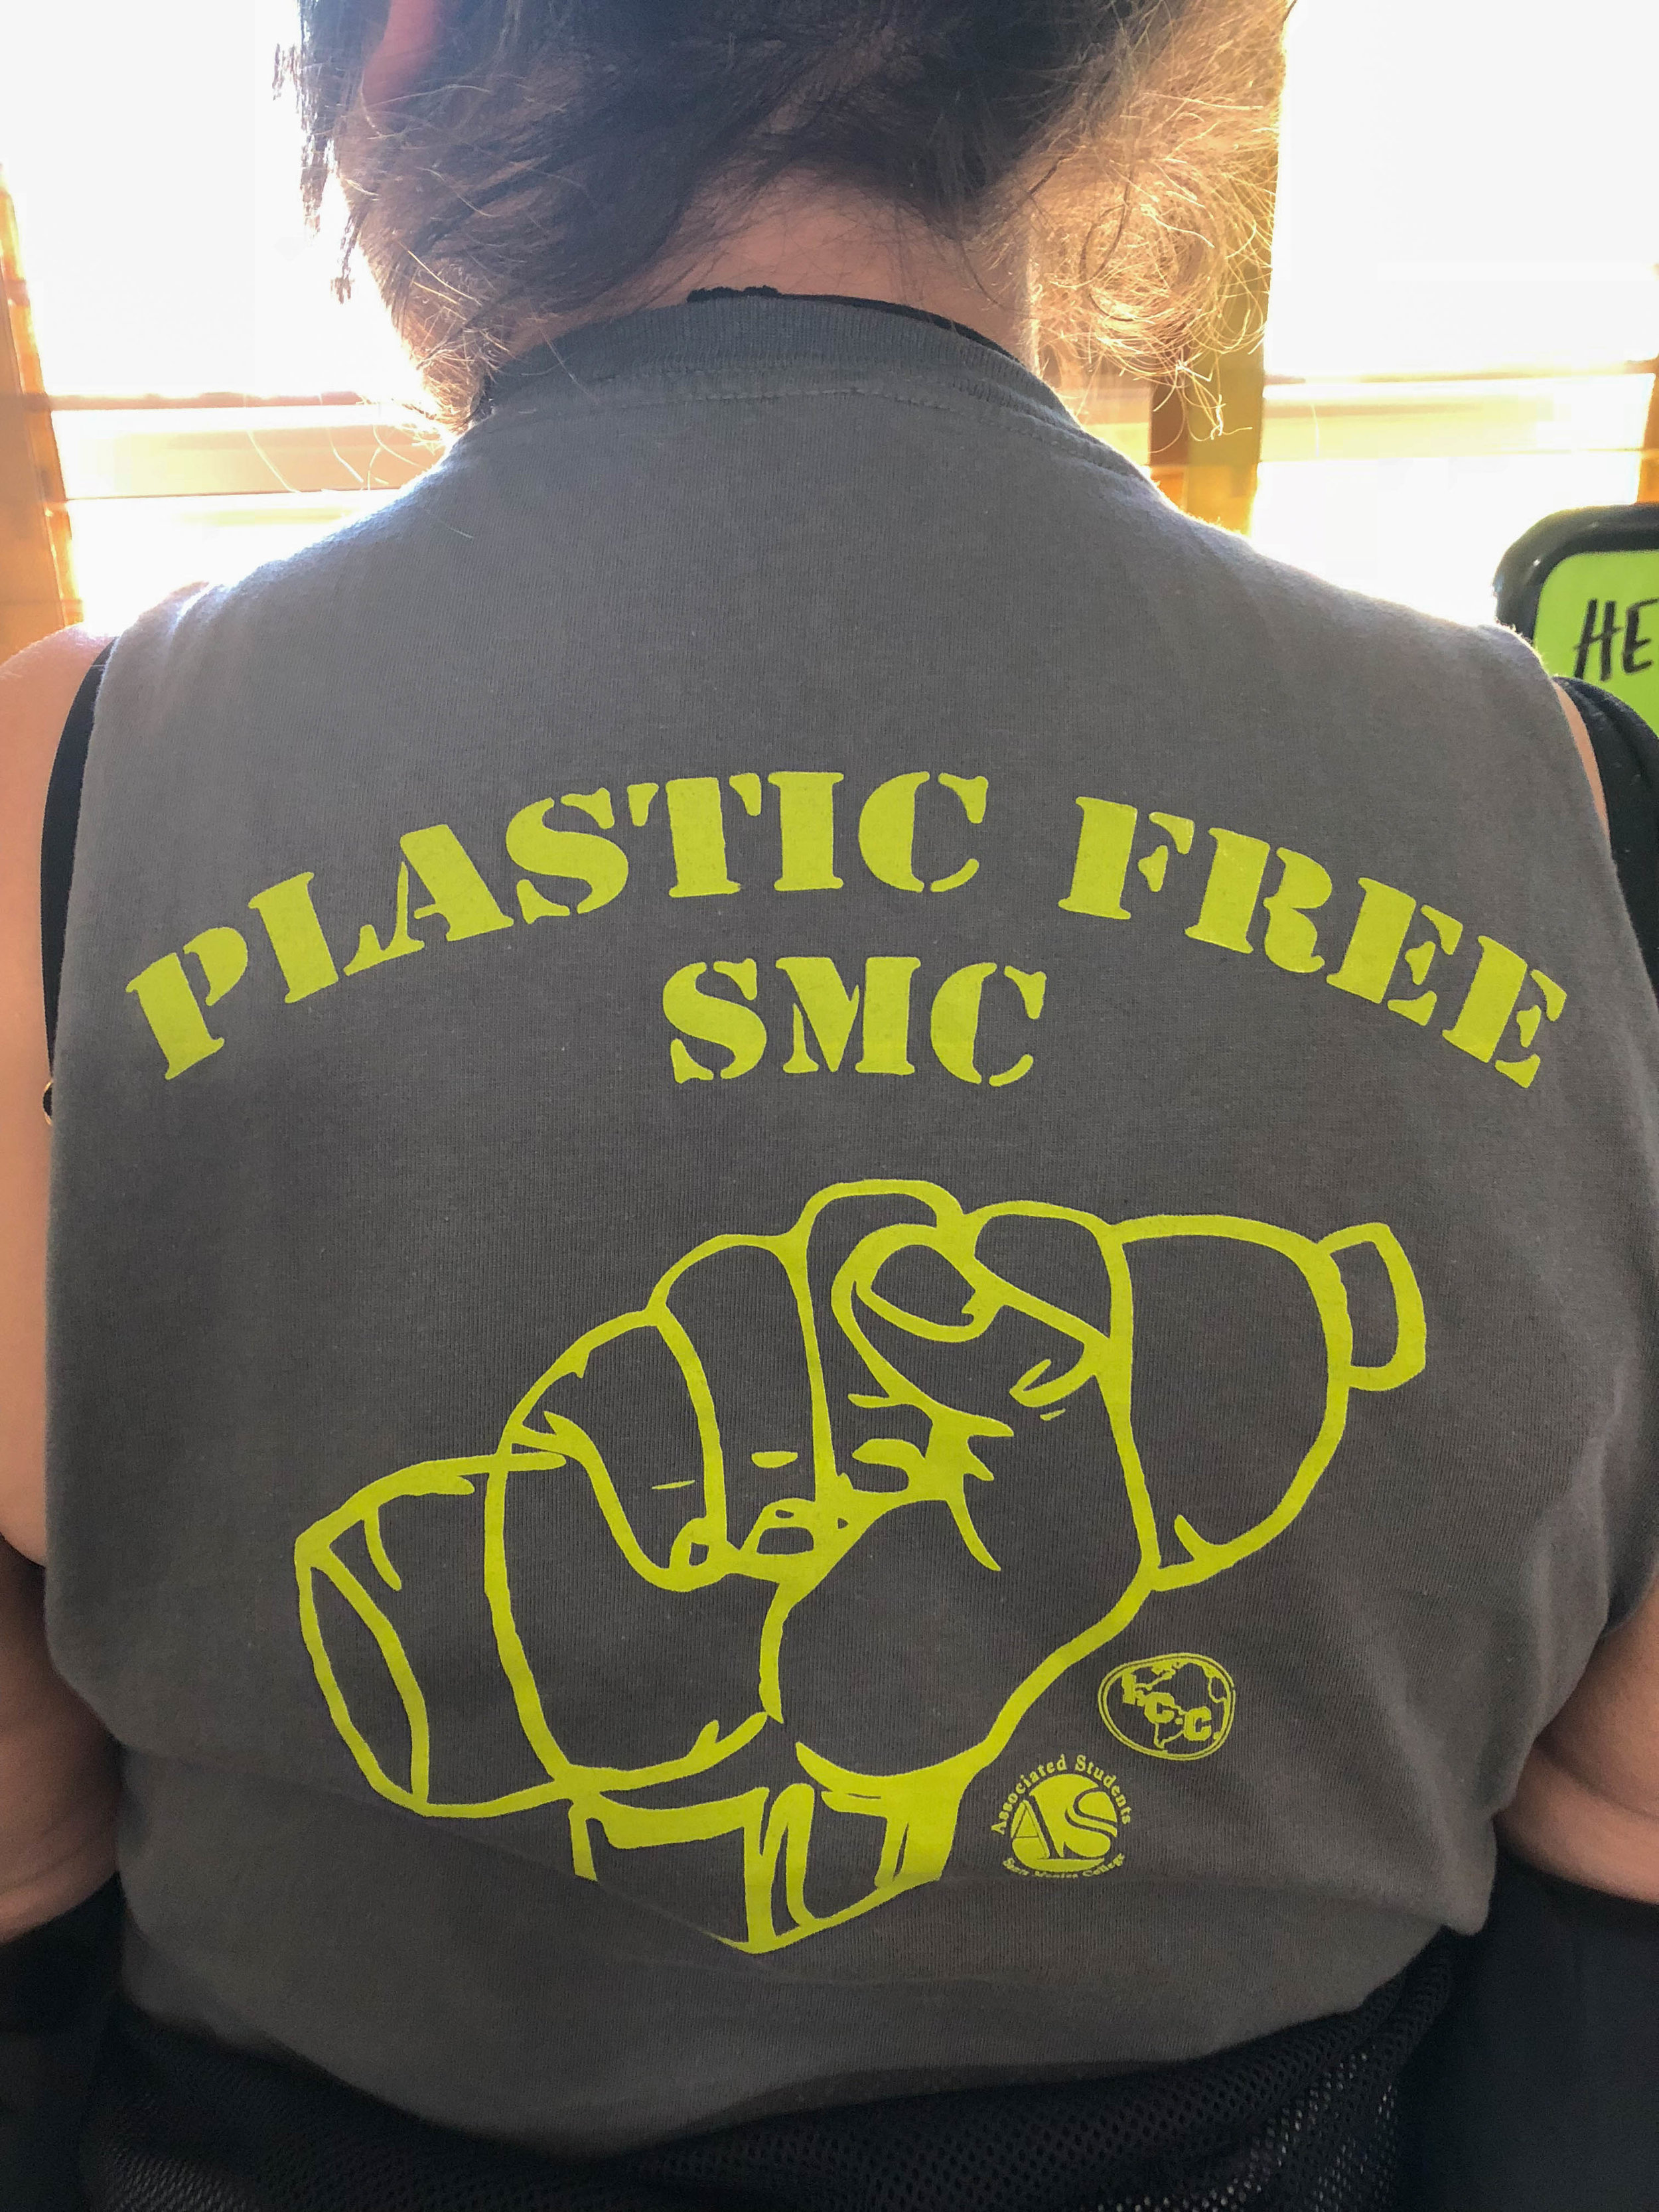 Vice President of Free Plastic SMC, Ashley Avant, sports the clubs shirt from last year in Santa Monica, Calif on Thursday, Febuary 22nd, 2018. (Photo by: Trevor Jackson)